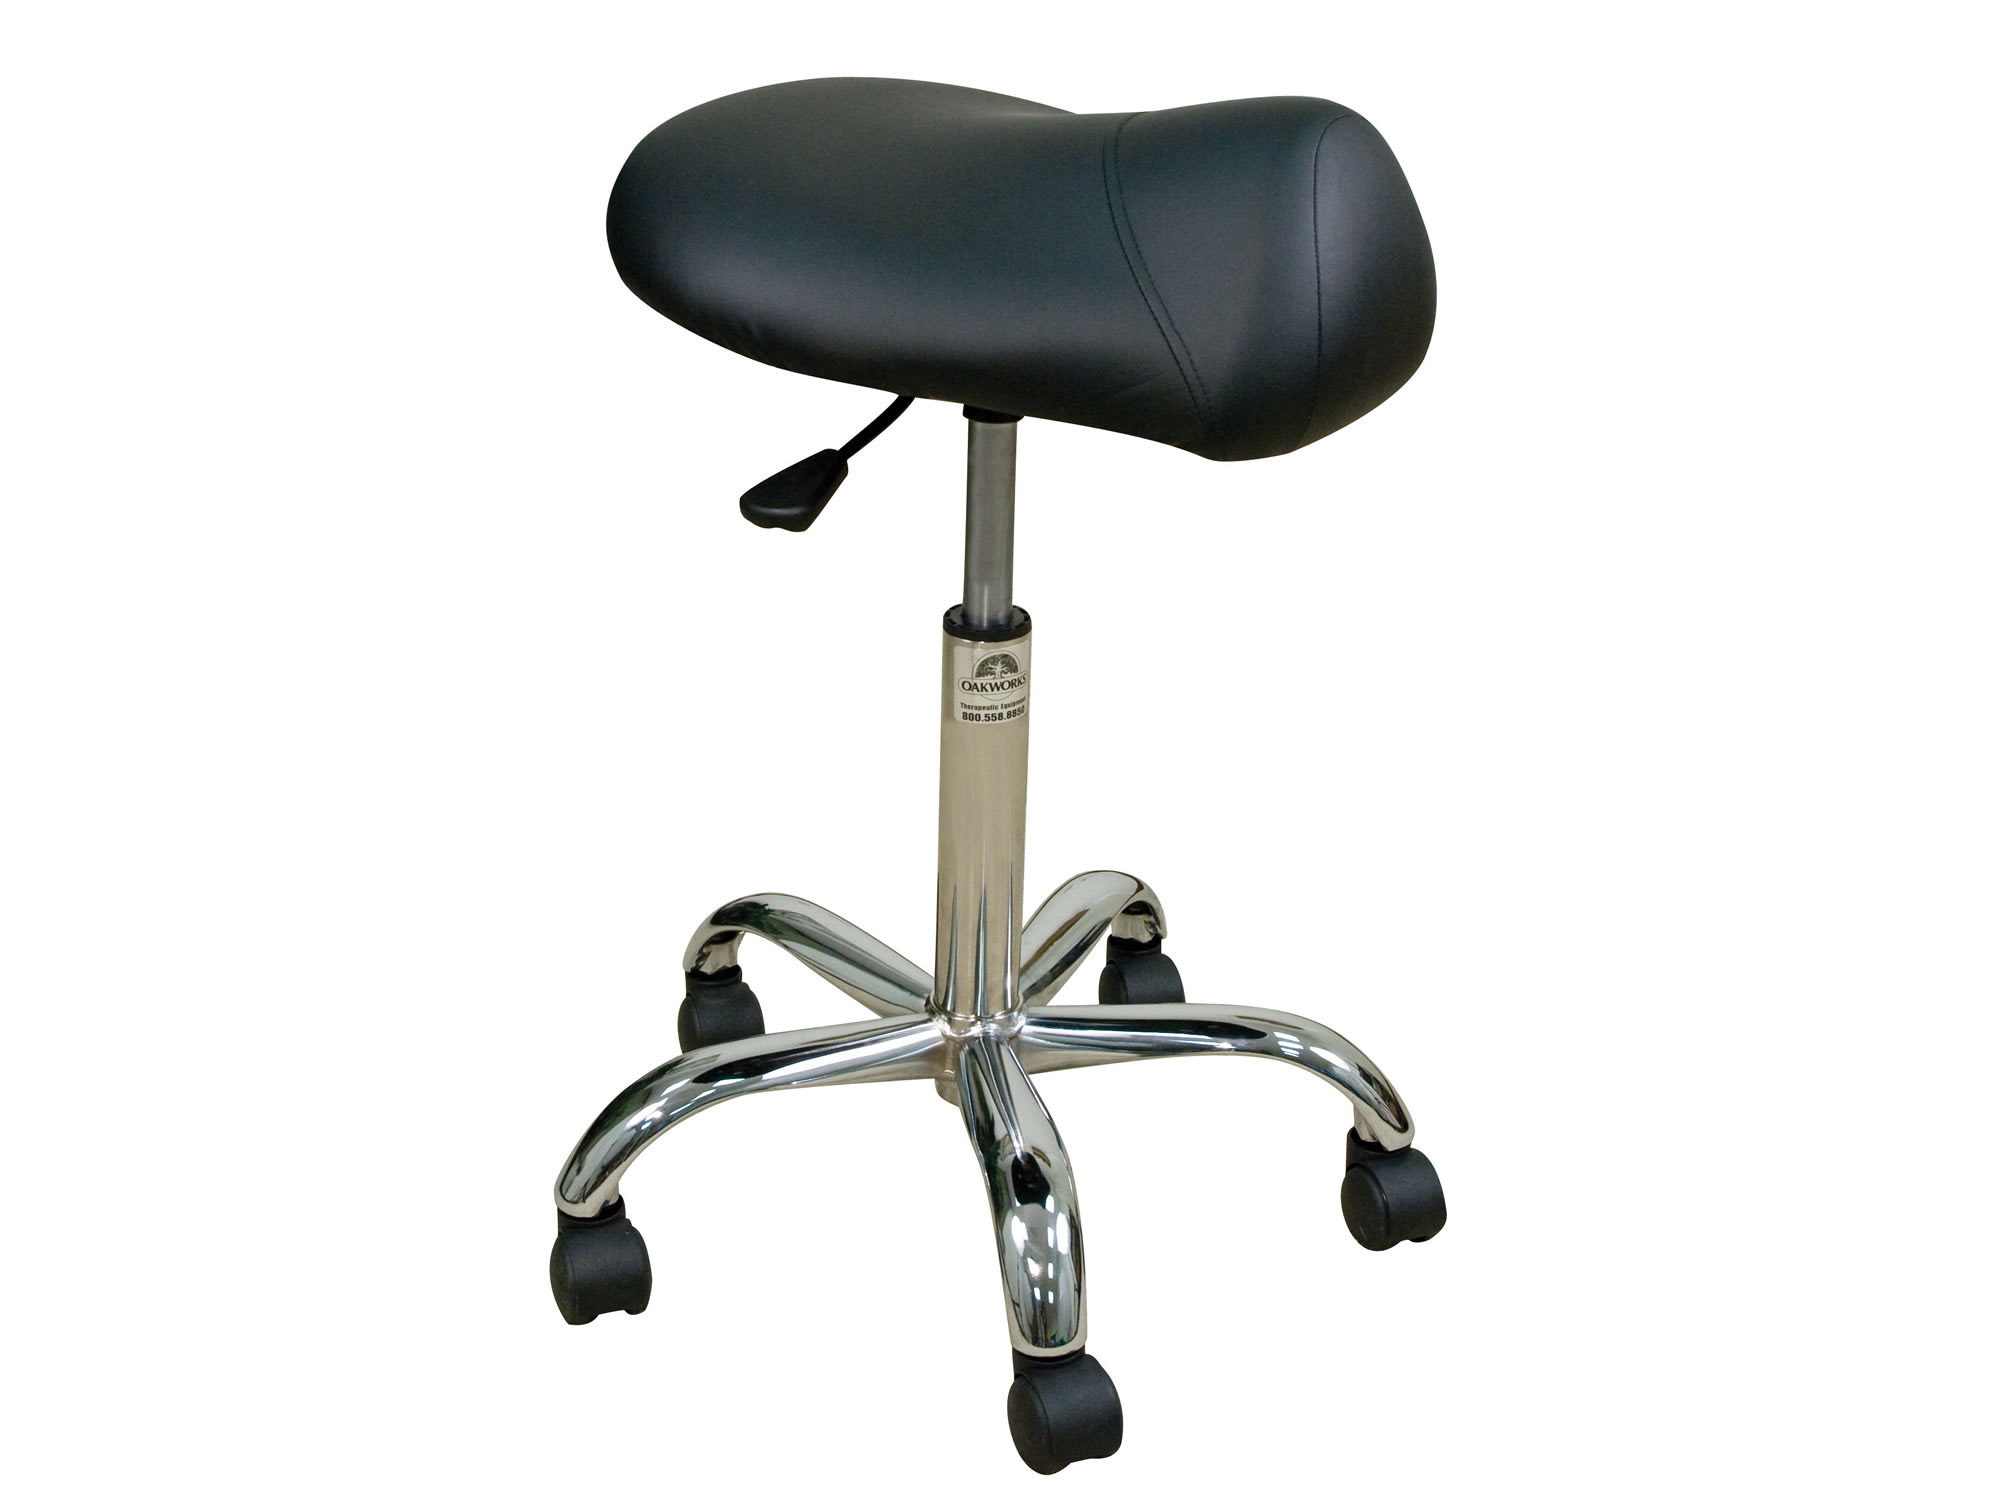 Saddle Chair Chairs Model